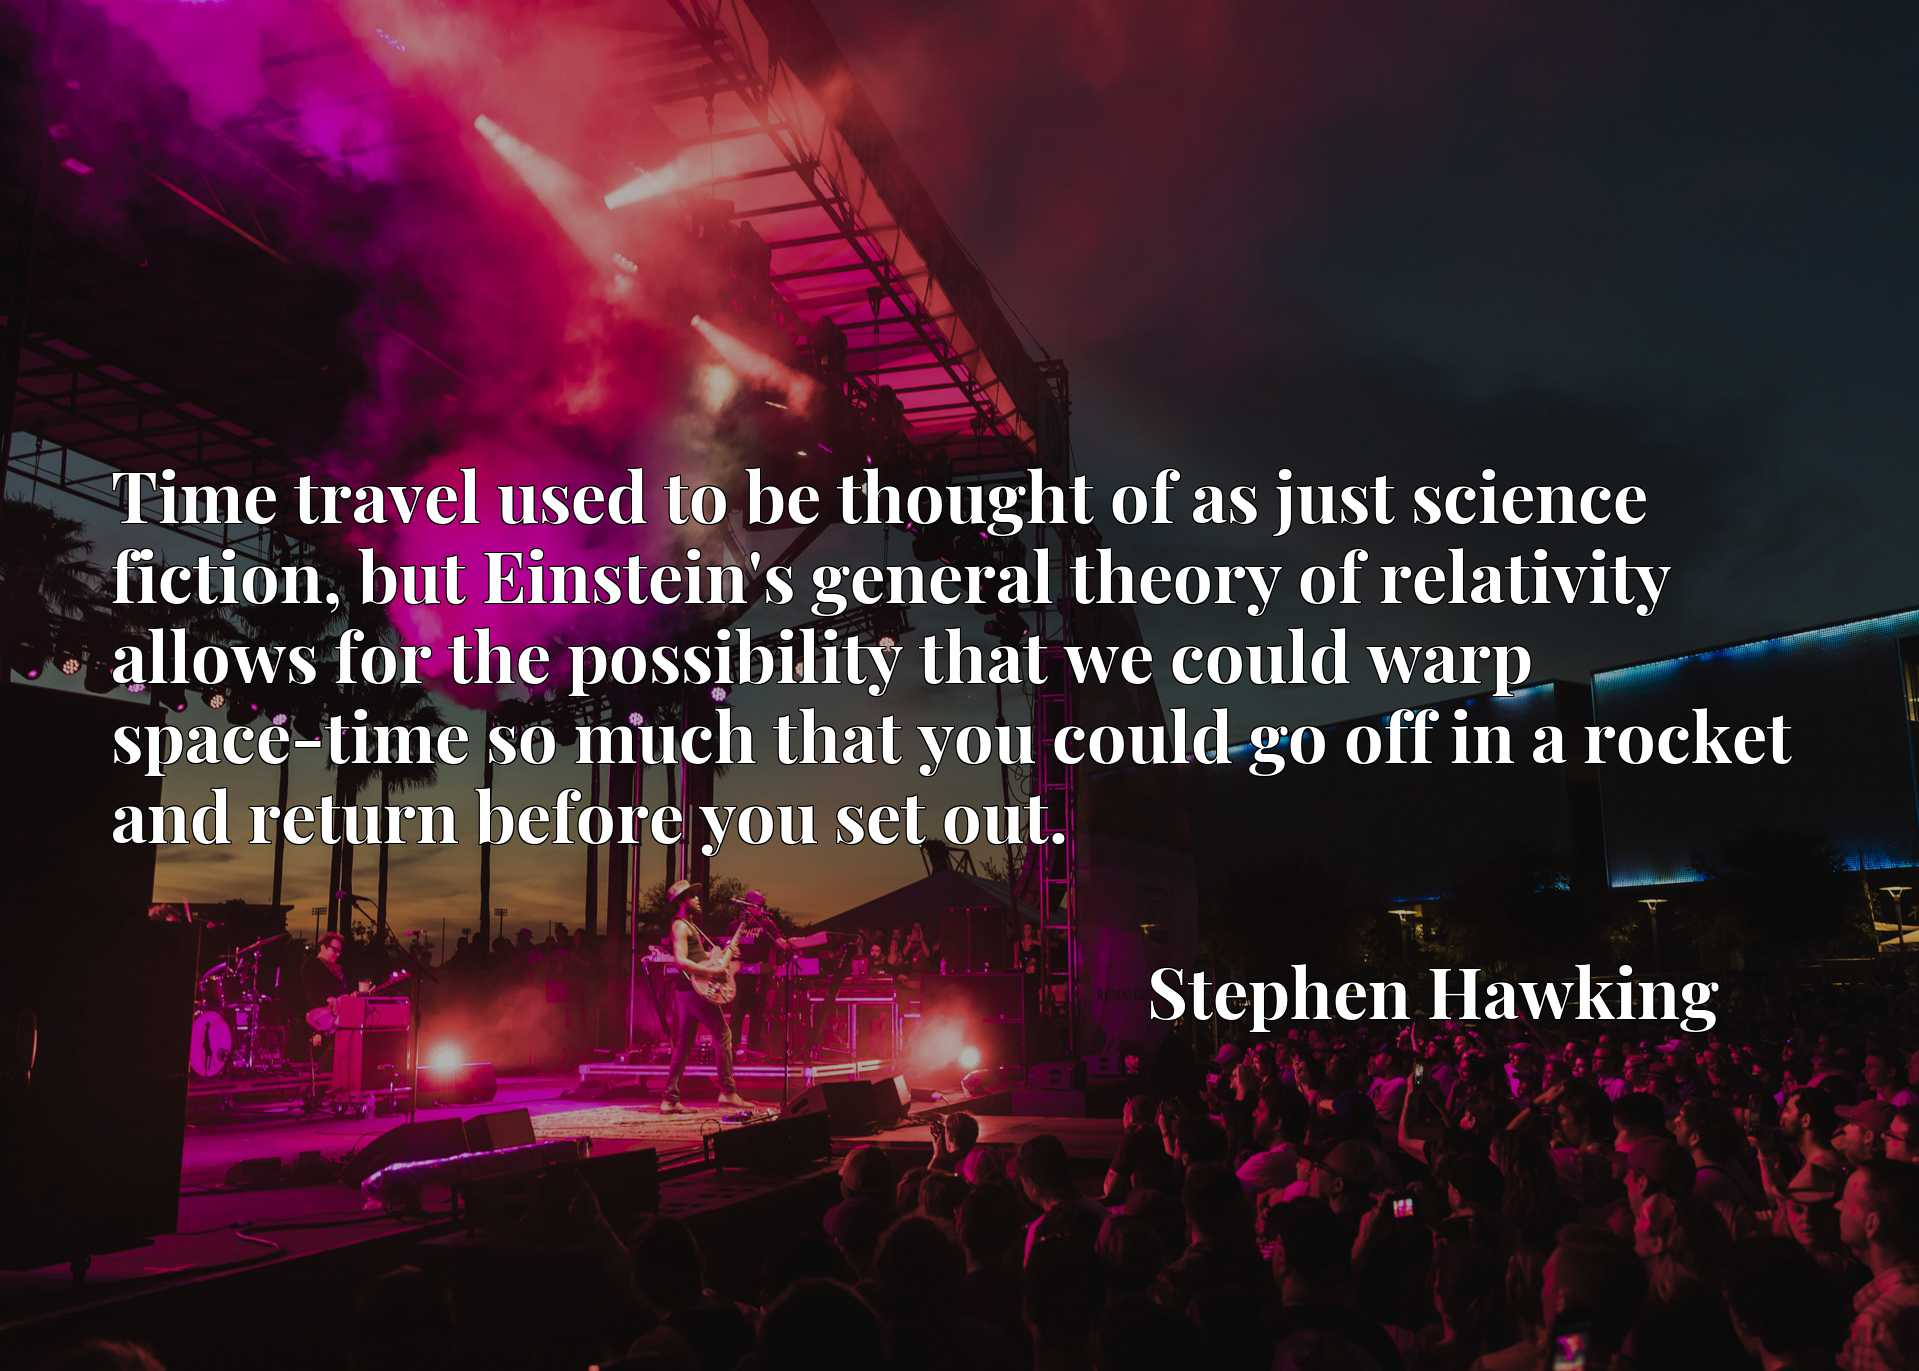 Time travel used to be thought of as just science fiction, but Einstein's general theory of relativity allows for the possibility that we could warp space-time so much that you could go off in a rocket and return before you set out.